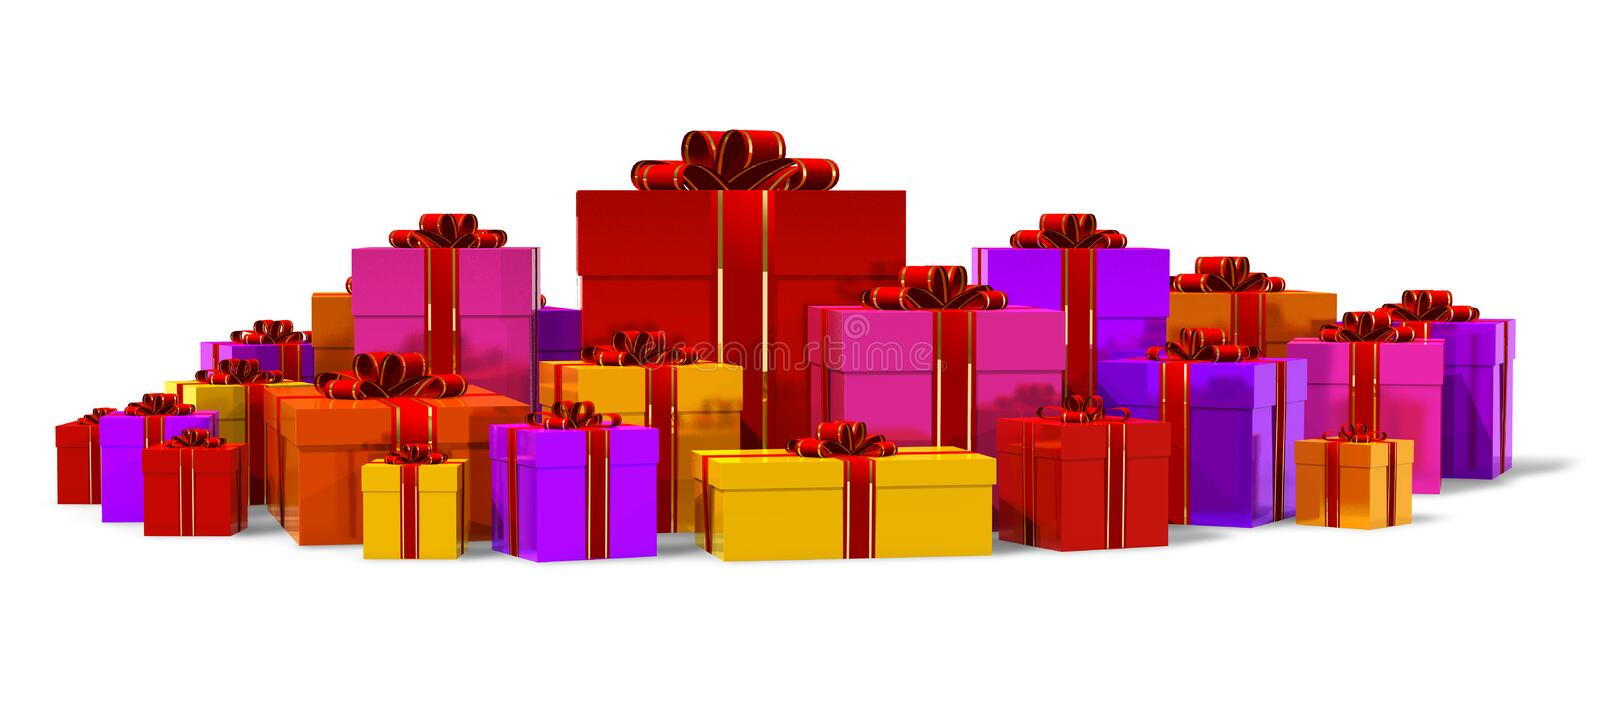 Heap of color gift boxes stock illustration image of discount download heap of color gift boxes stock illustration image of discount 22465005 negle Choice Image